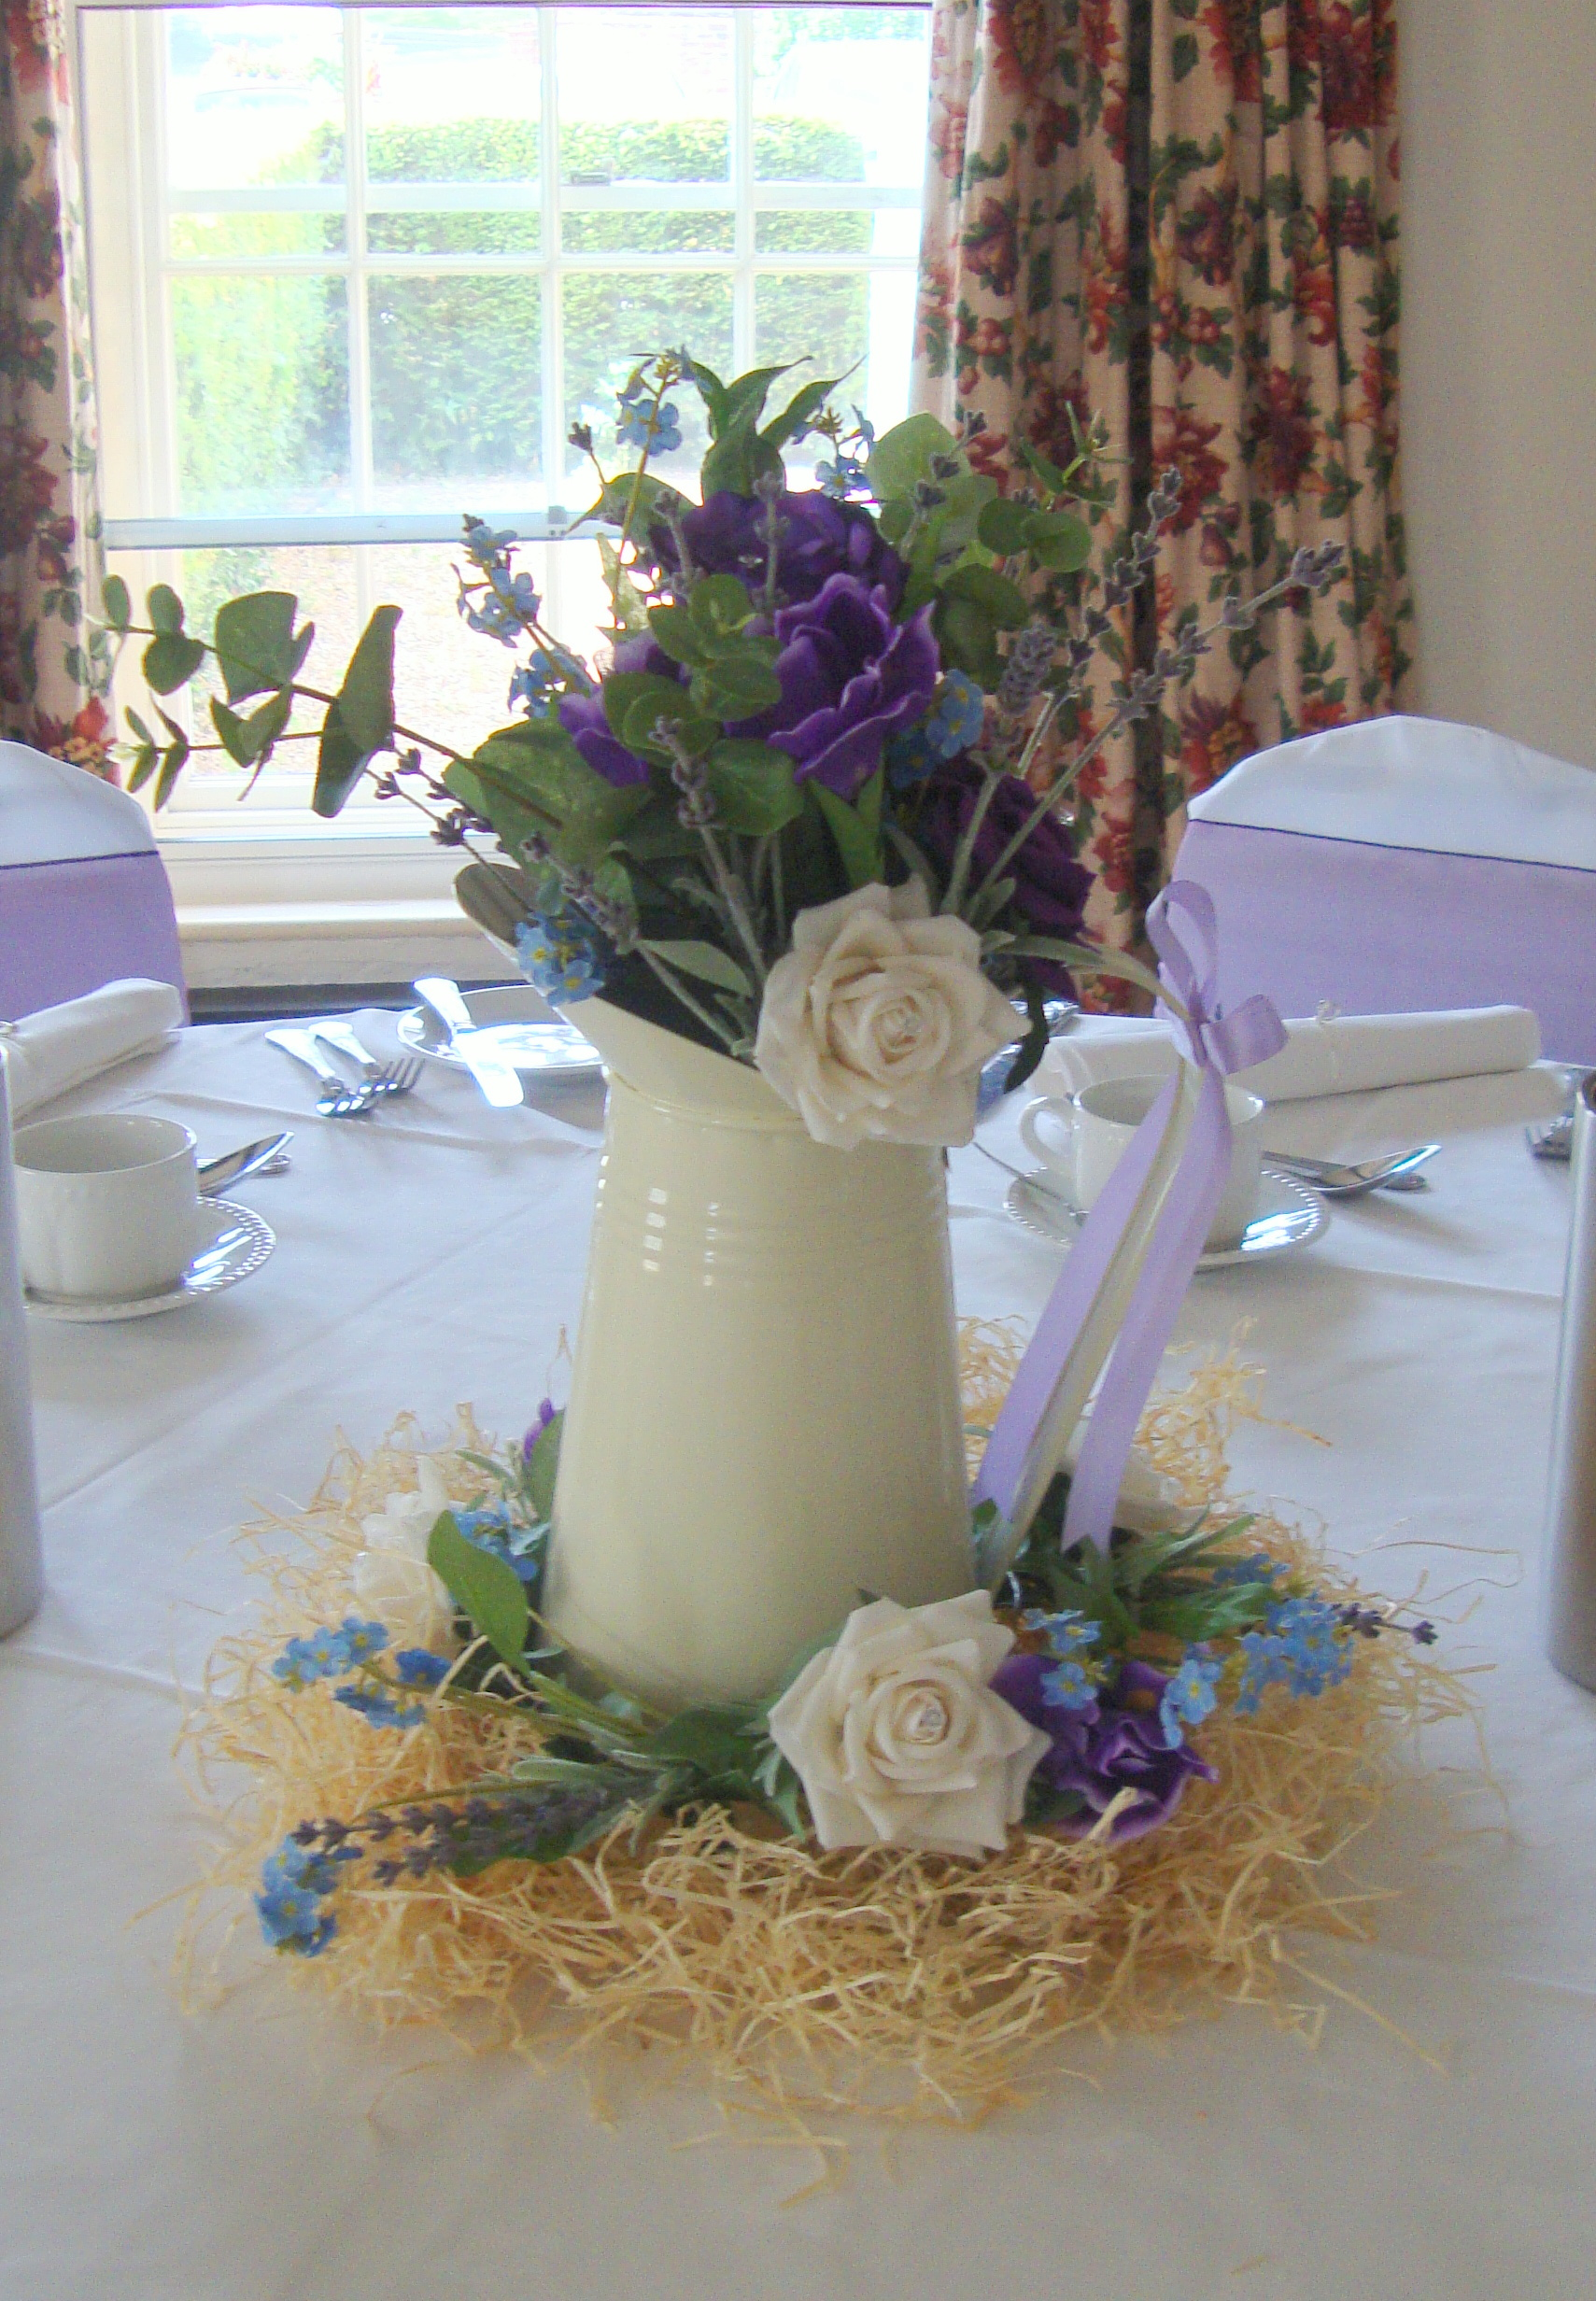 Guest Table Arrangement - Jug Display Sitting on Straw, With Purple & Ivory Roses, Purple Iris, Eucalyptus With Matching Garland